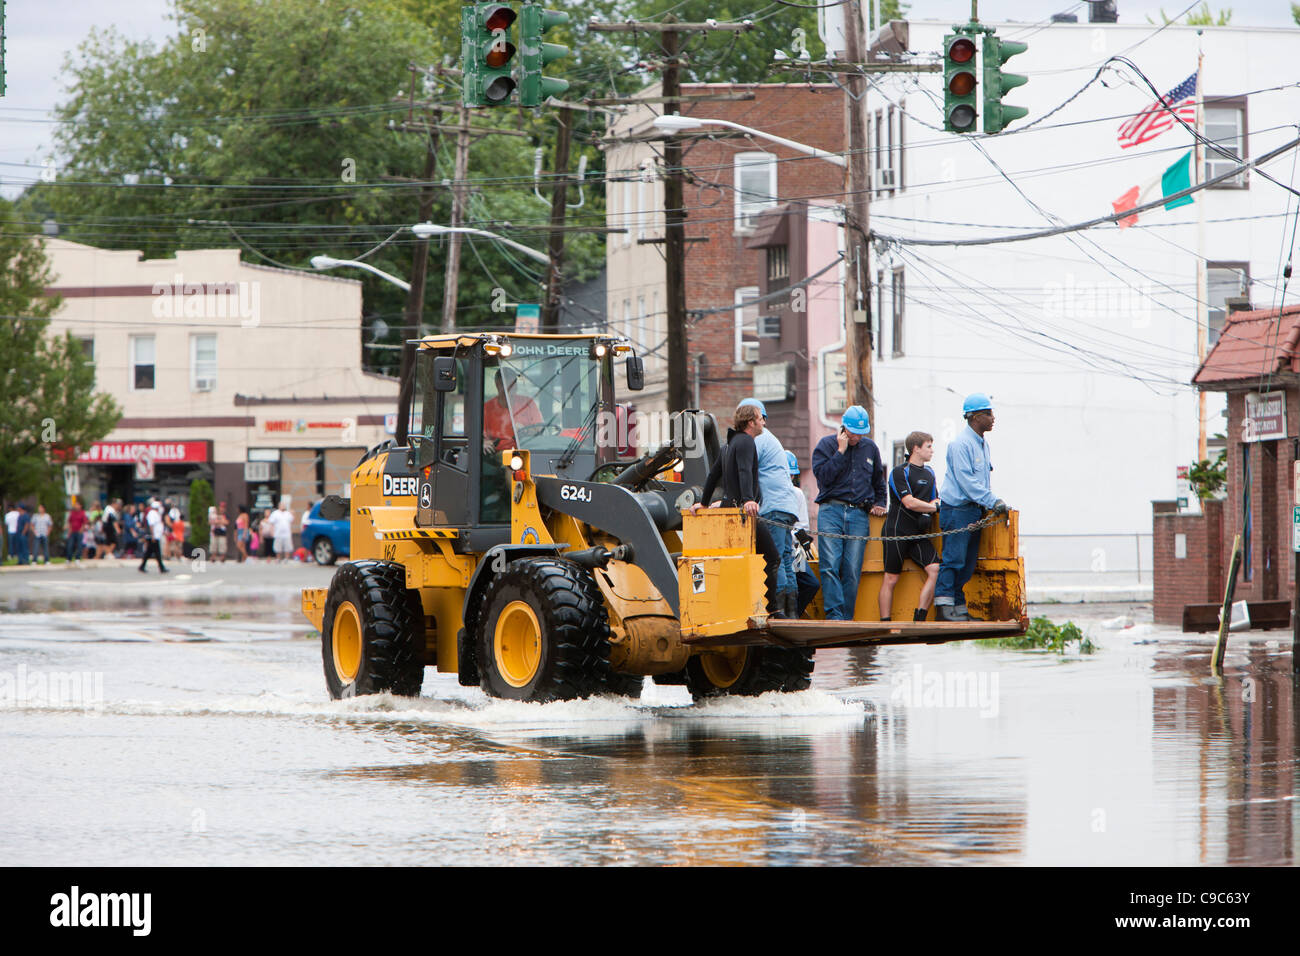 A Con Edison repair crew gets a lift in a front loader on flooded Mamaroneck Avenue in the aftermath of Hurricane - Stock Image